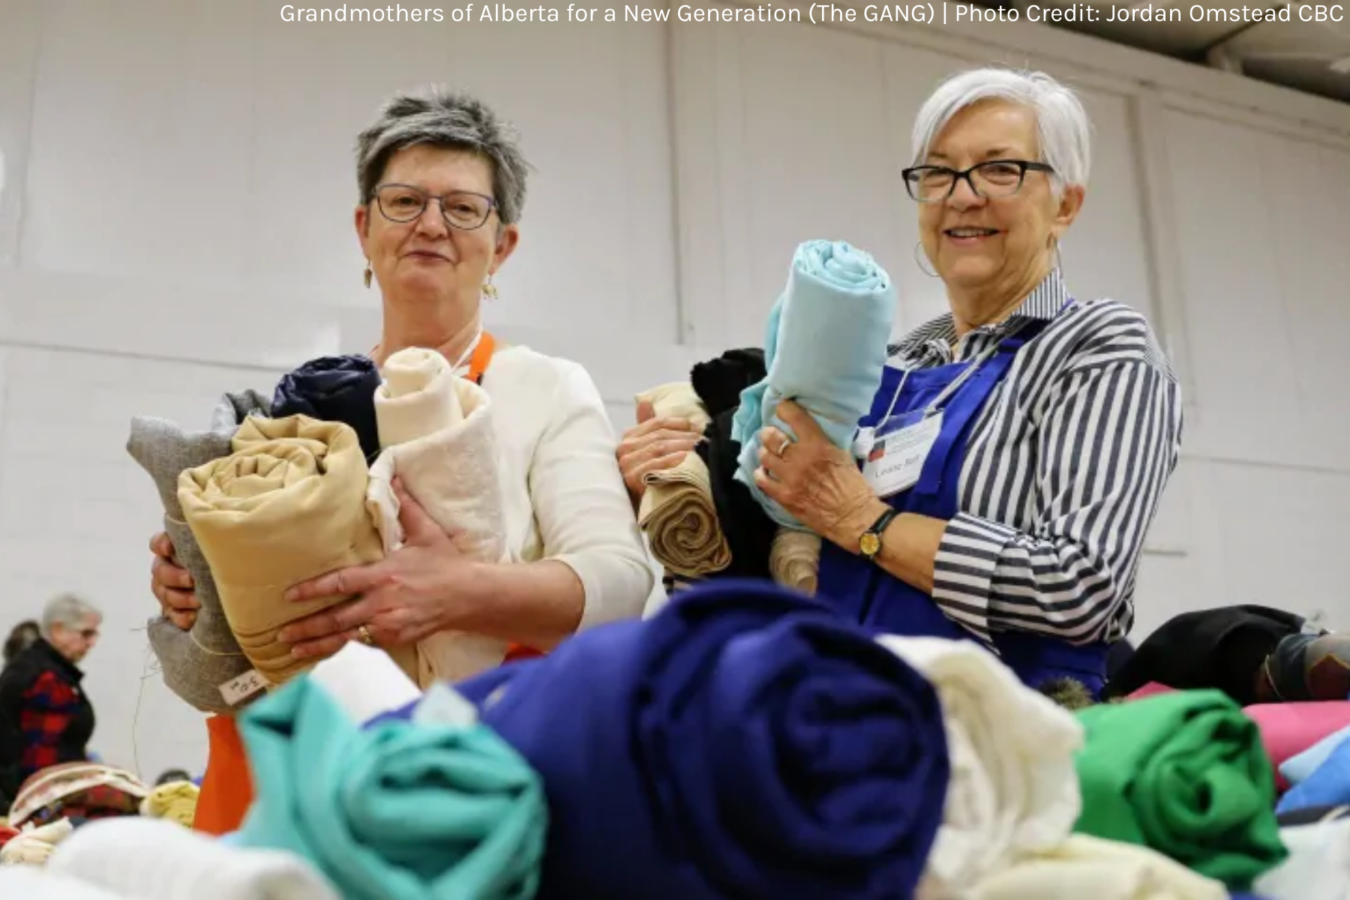 Grandmothers of Alberta for a New Generation (The GANG)